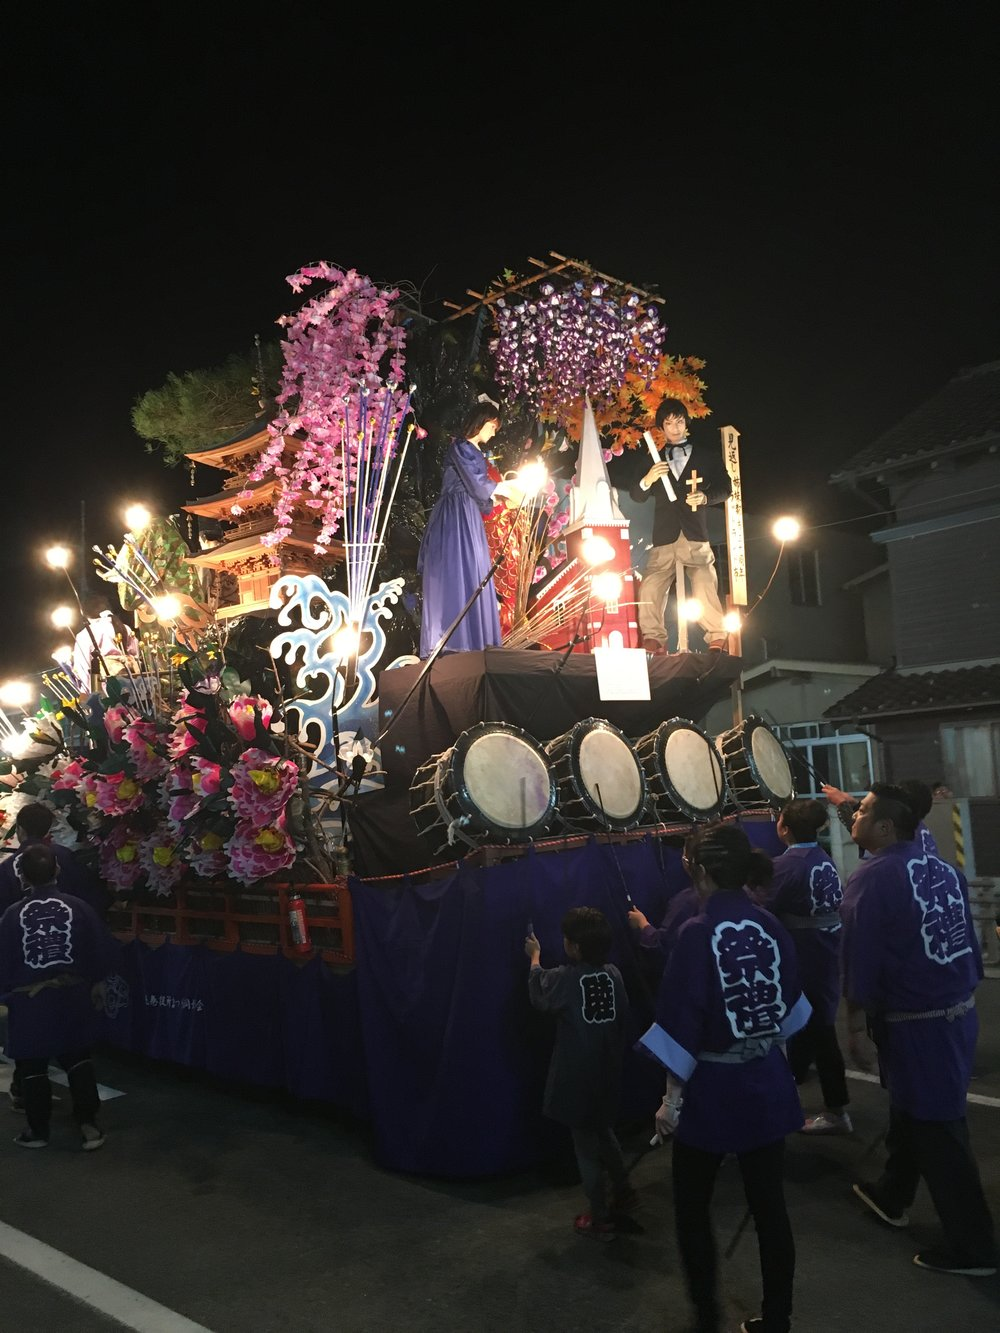 One of the many beautiful floats in the Hanamaki Autumn festival.